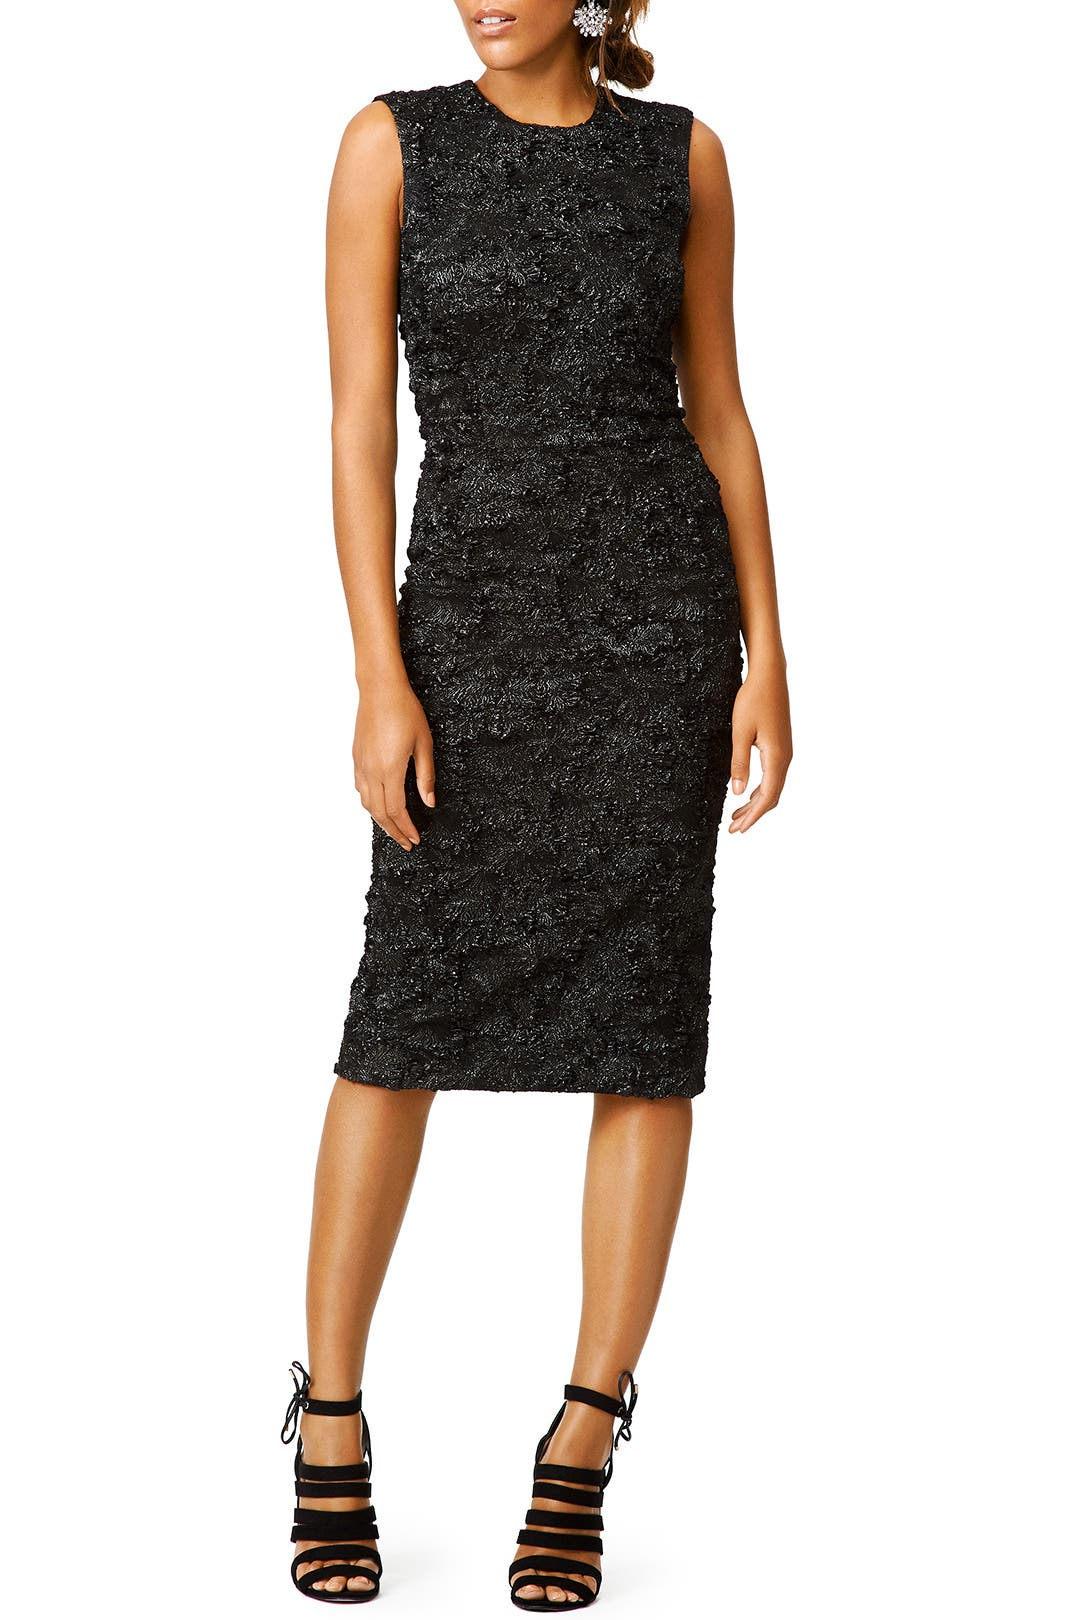 Vera Wang Imprint Sheath